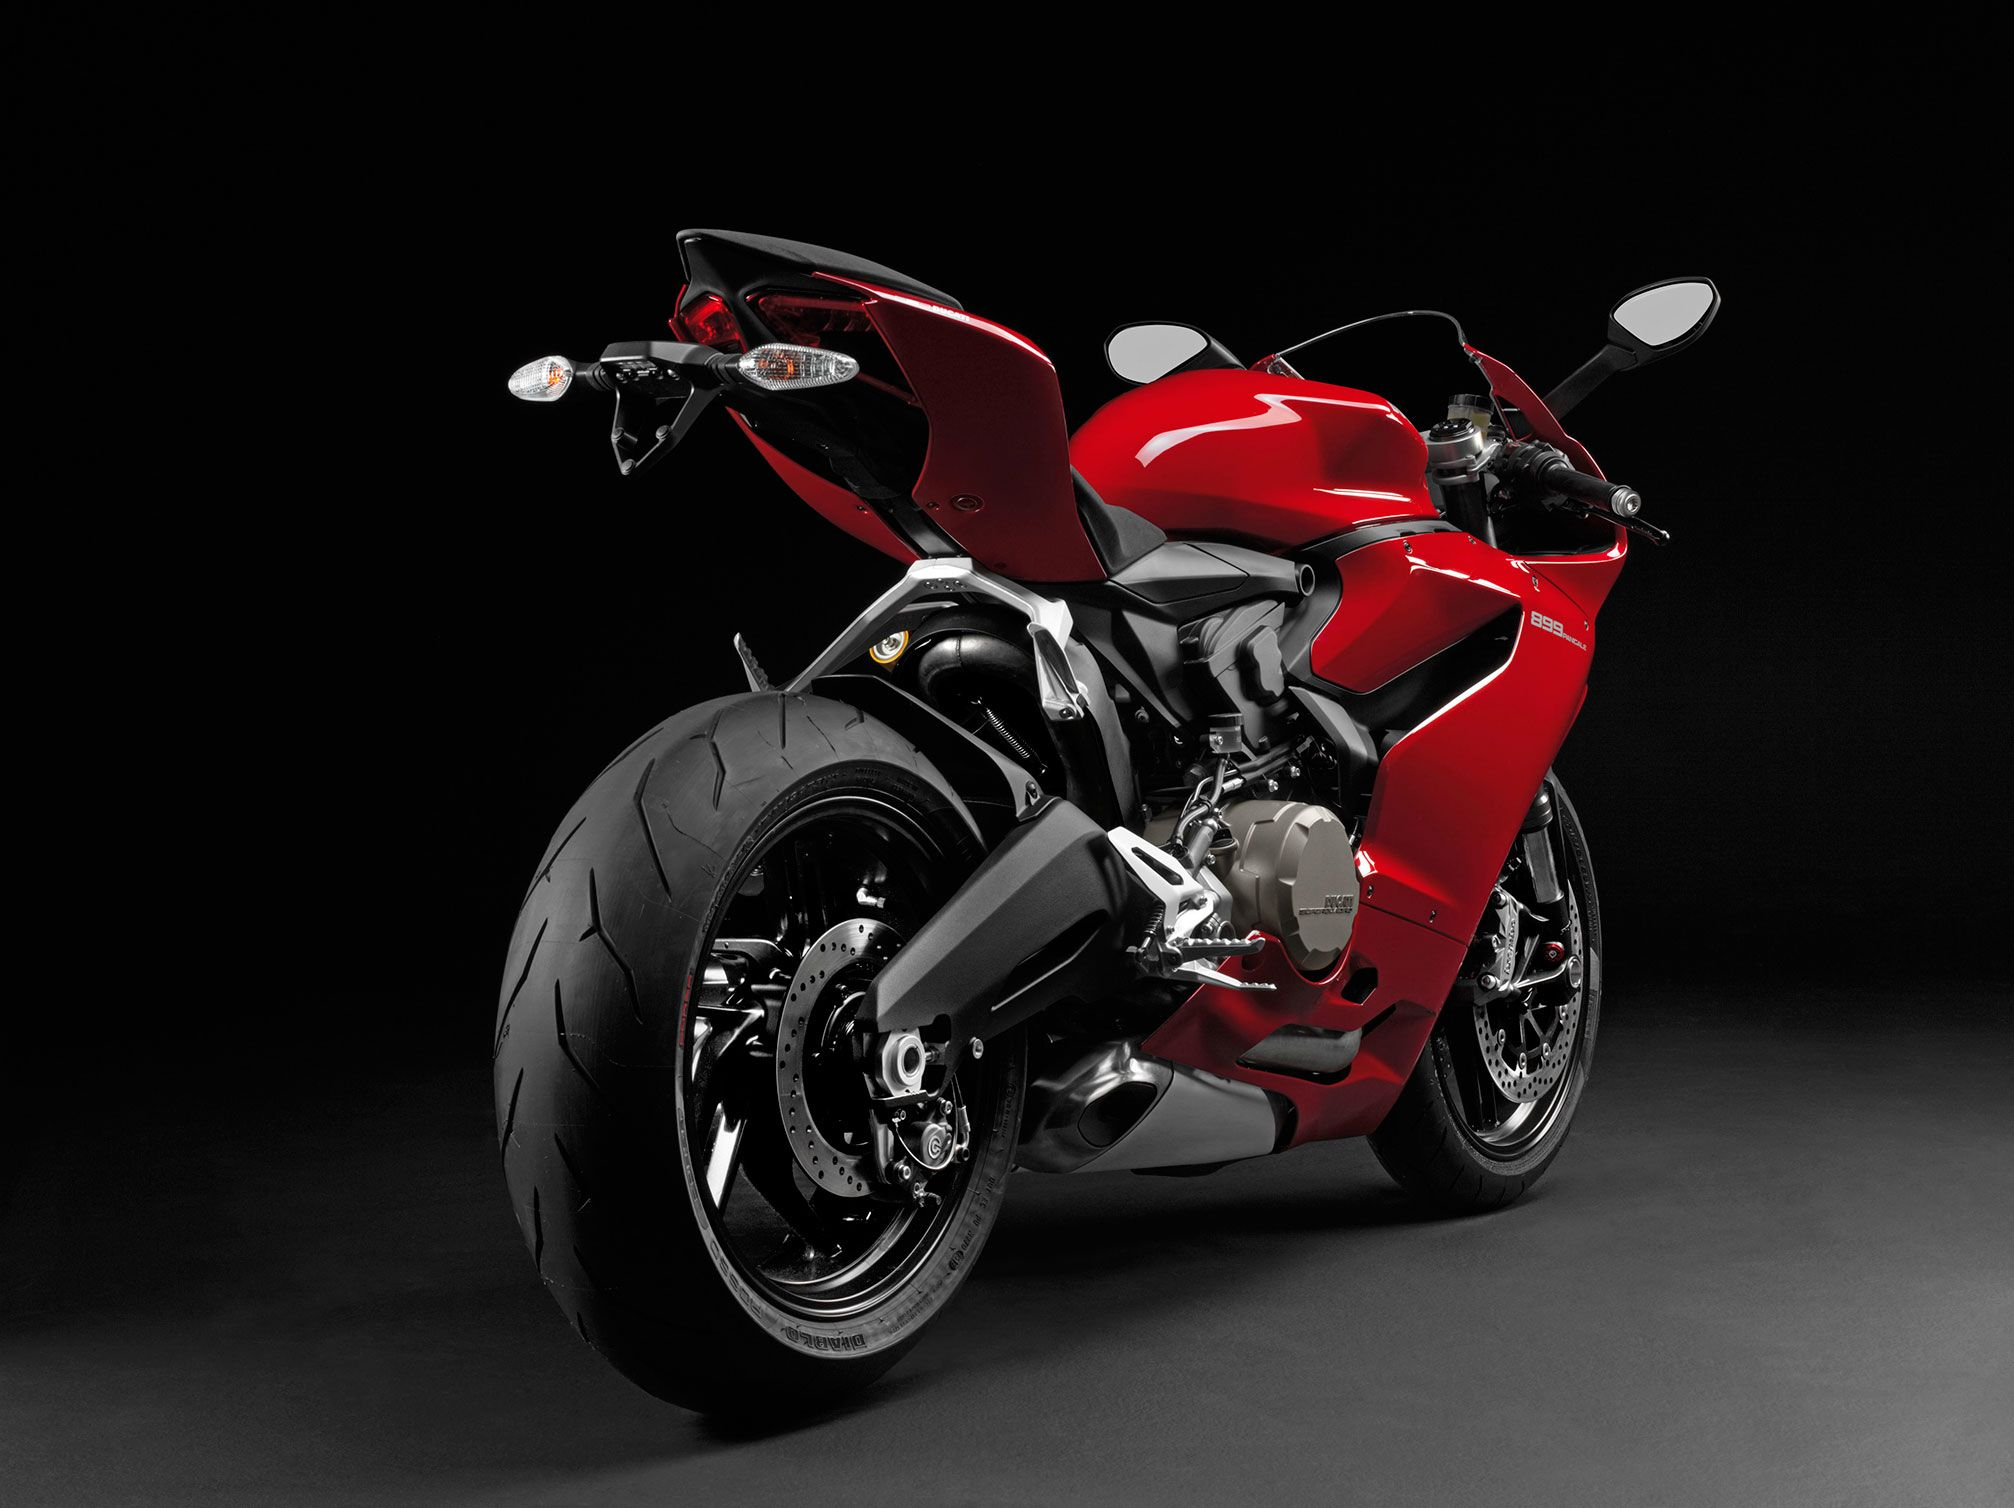 Ducati-899-Panigale-BackView-1280x720-Wallpaper | Ducati ...